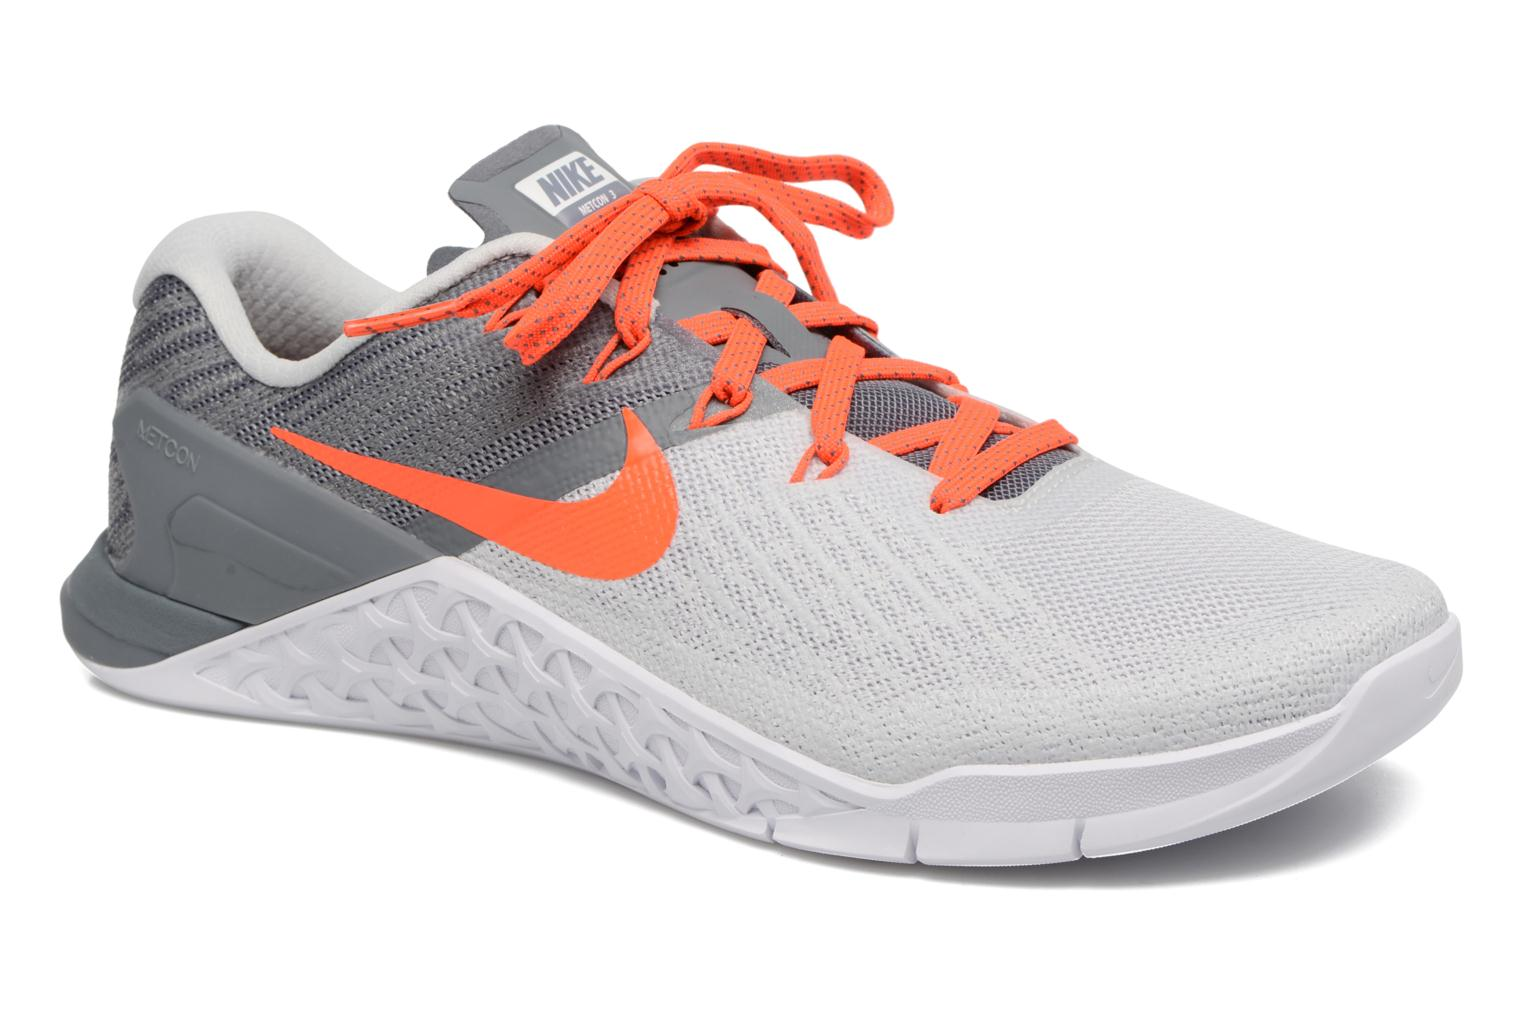 Wmns Nike Metcon 3 Pure Platinum/Total Crimson-Cool Grey